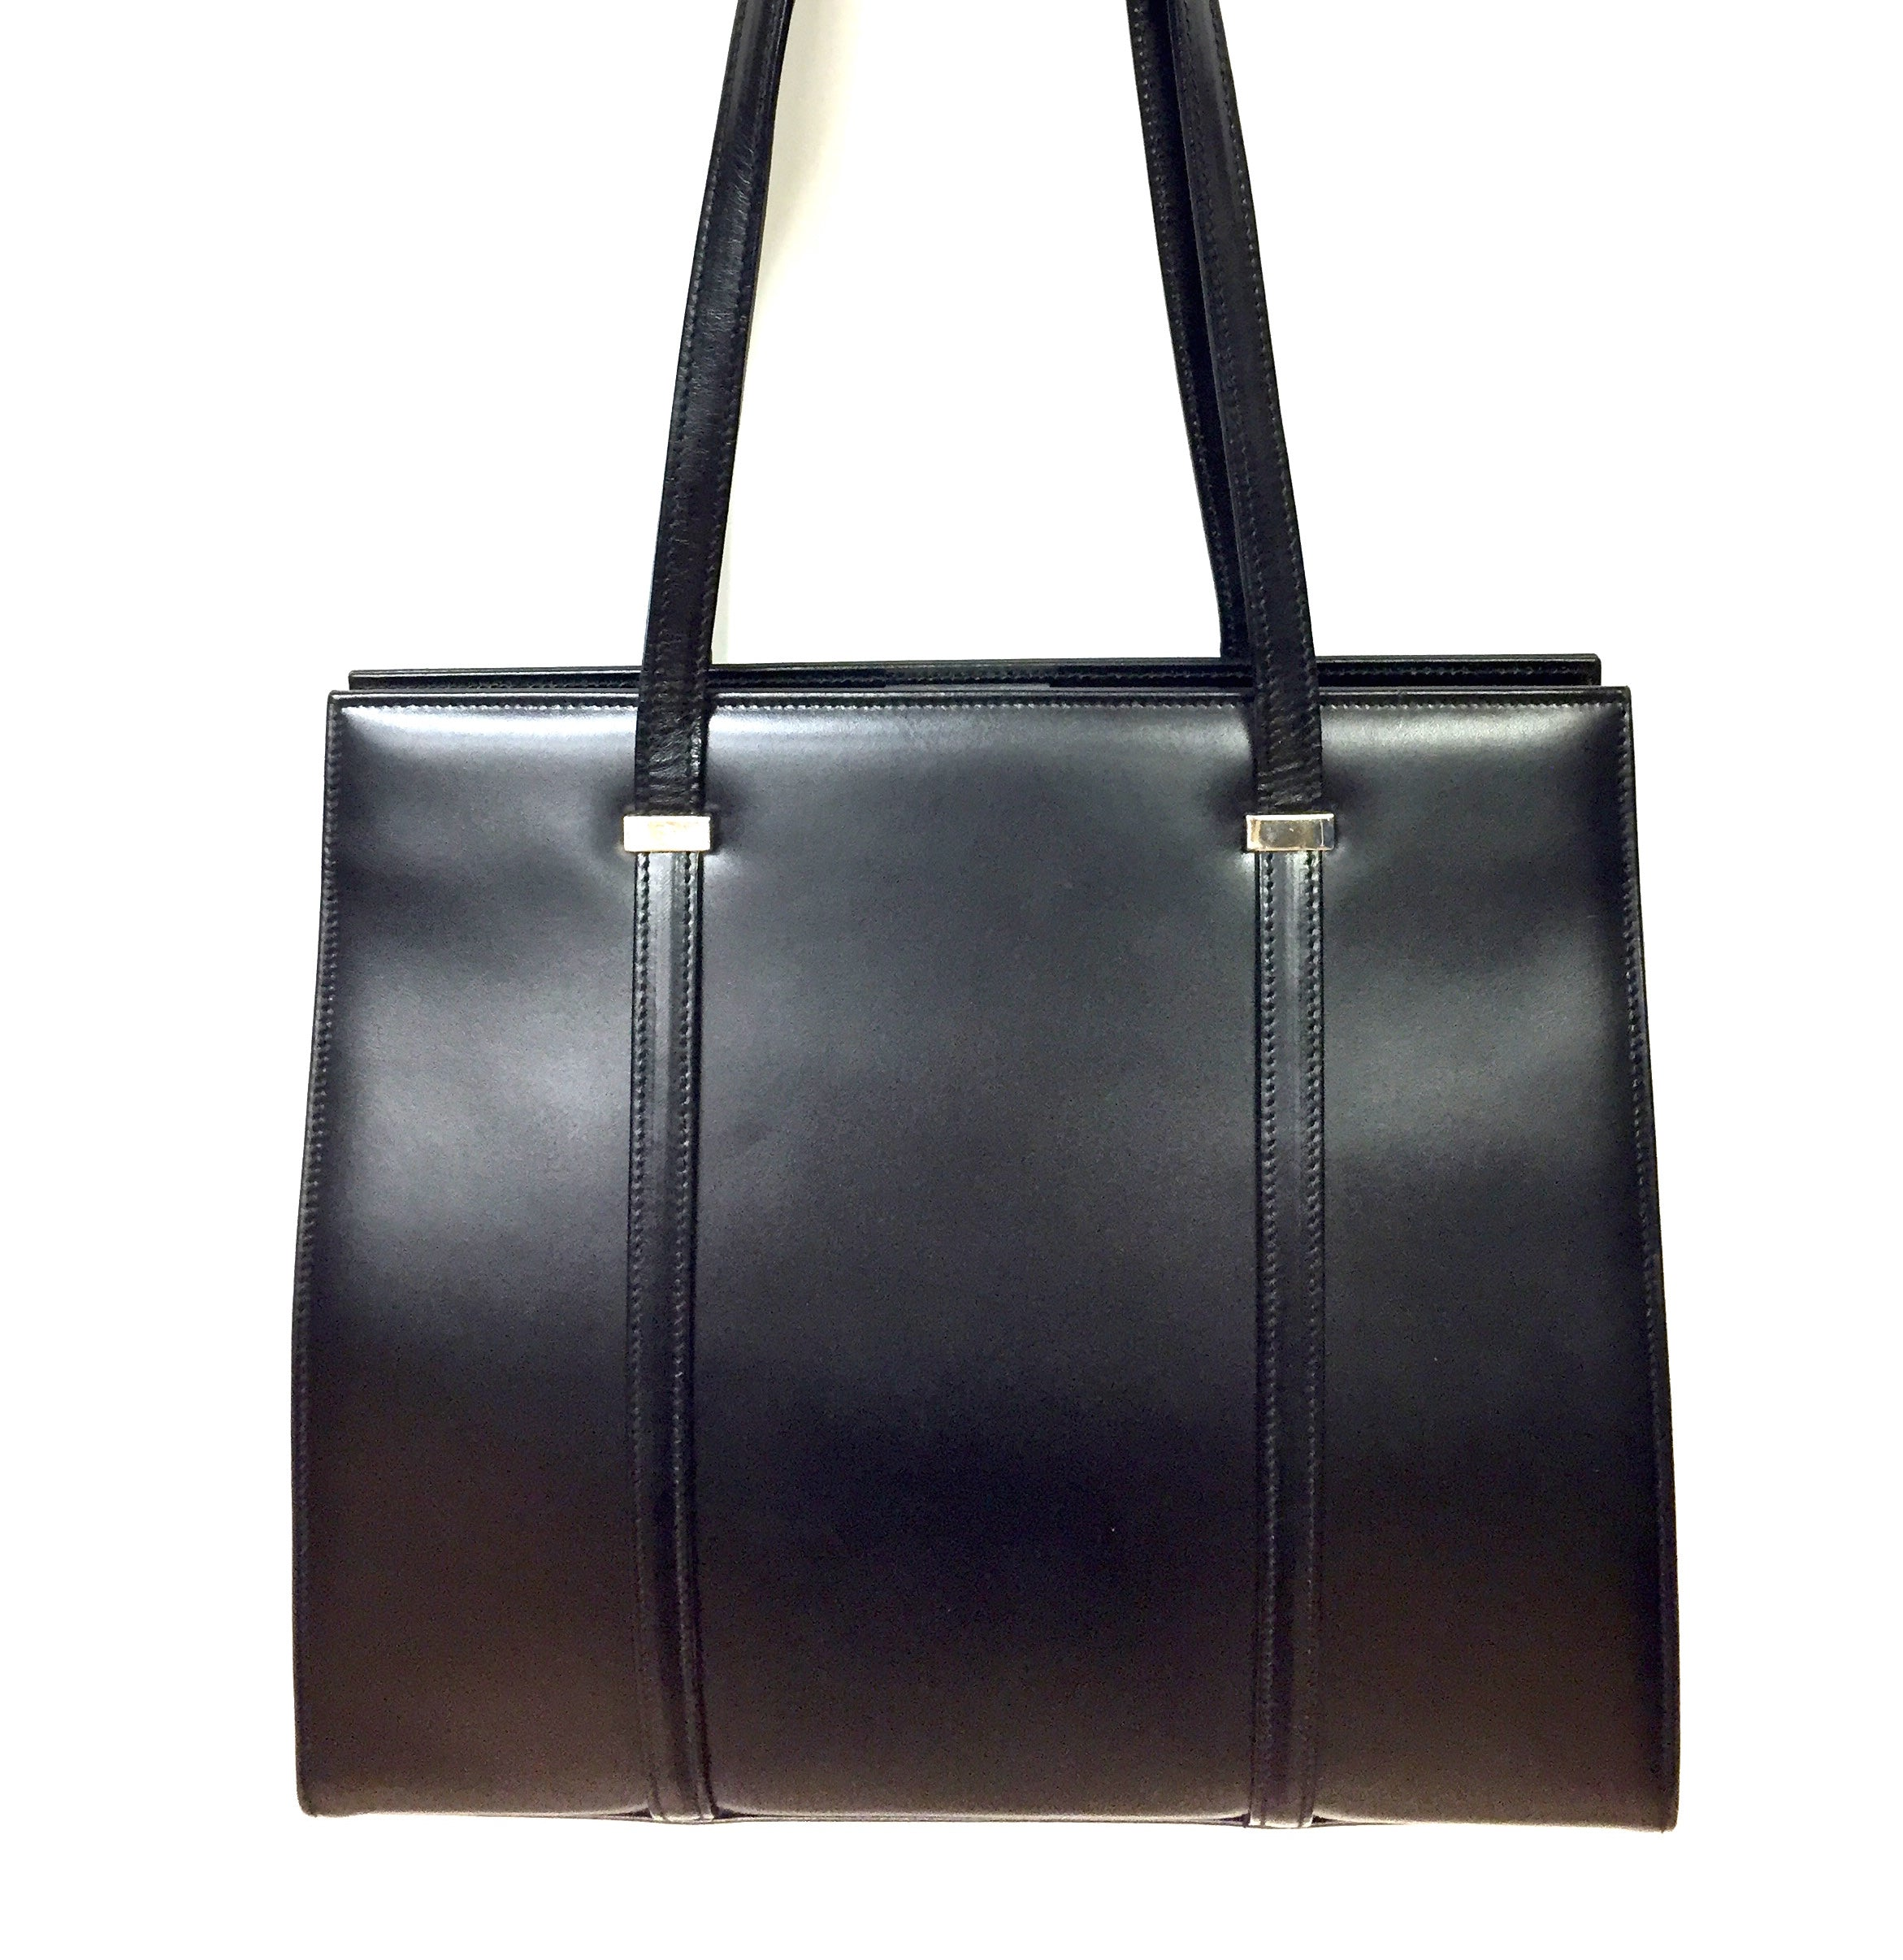 86d05da15f T. ANTHONY New York Black Smooth Leather Rigid Frame Shoulder Hand Bag